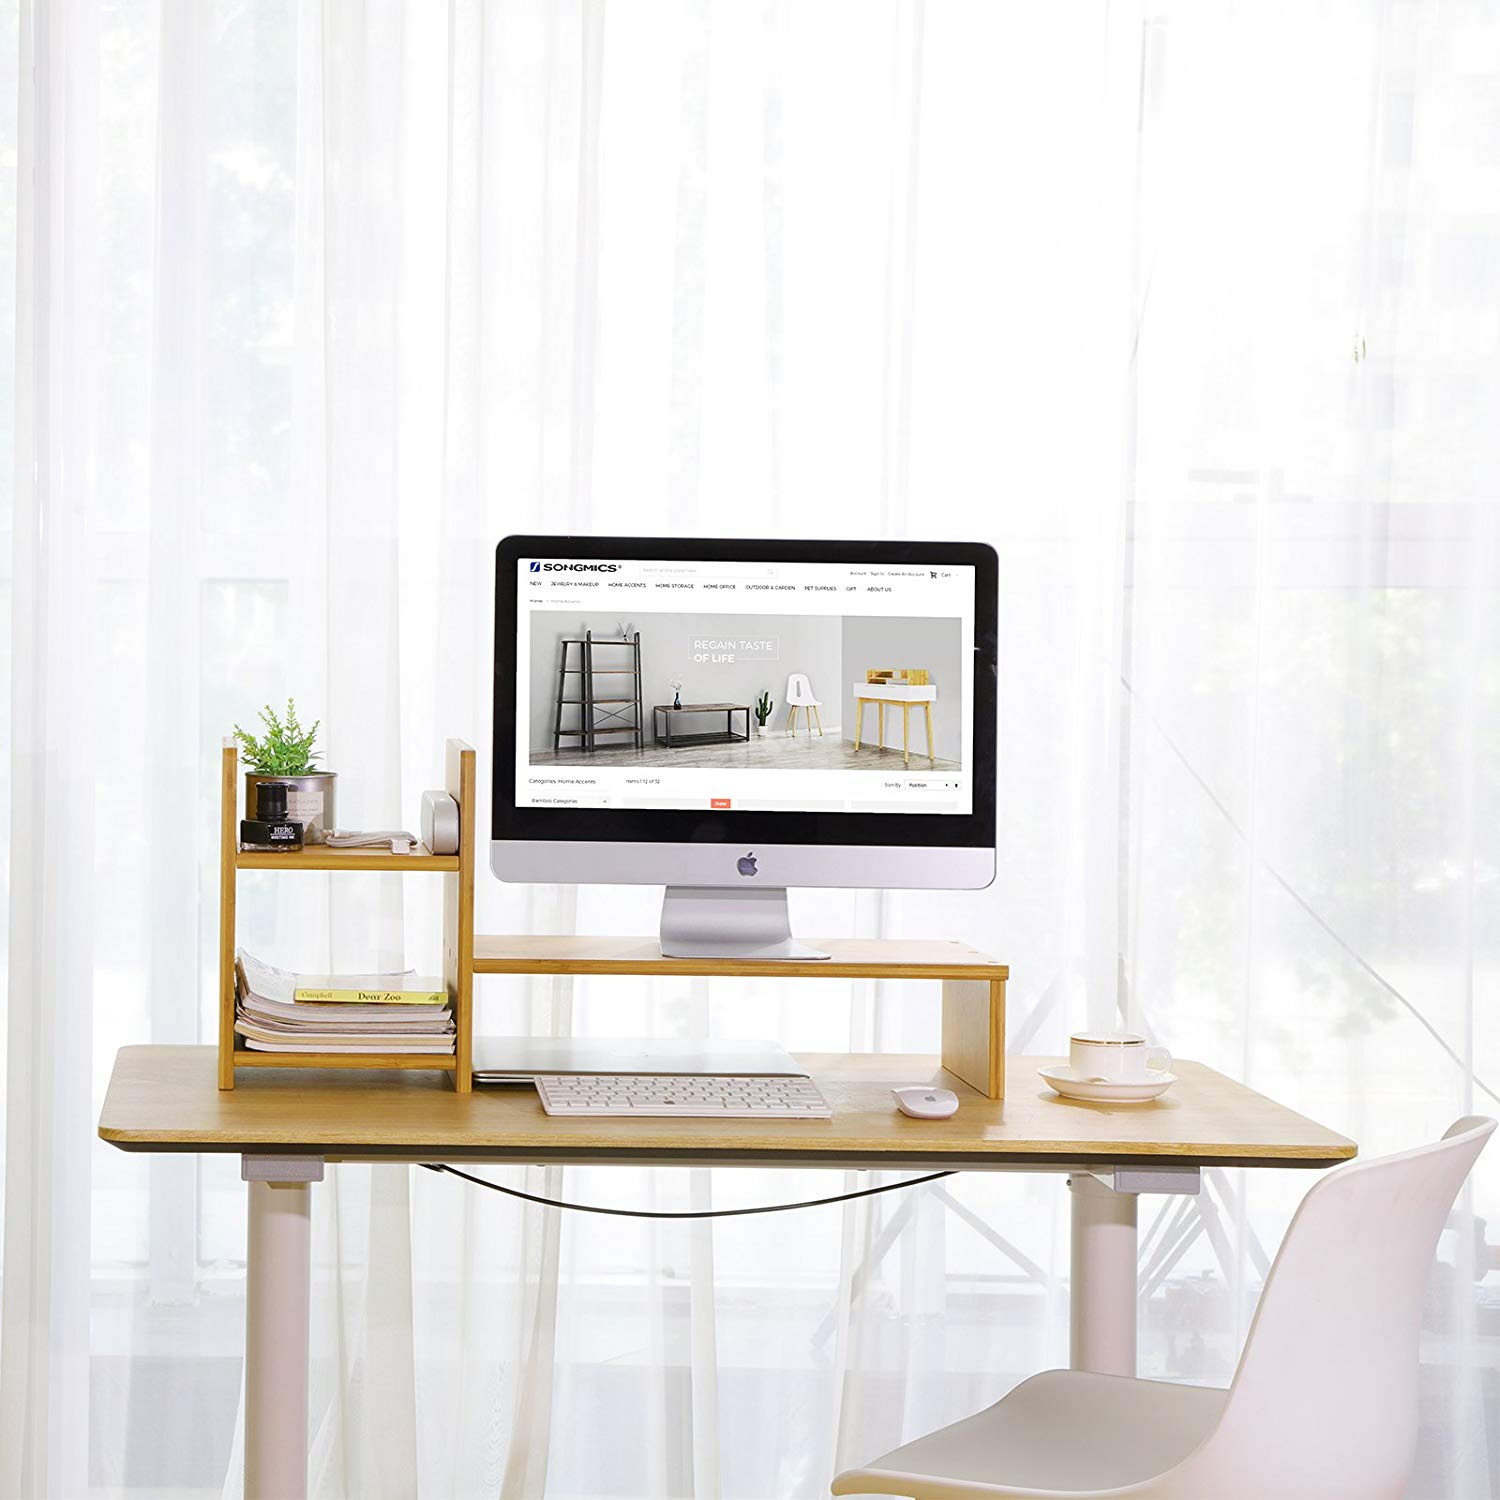 Adjustable Dual Wood Desk Riser Bamboo Computer Monitor Stand With